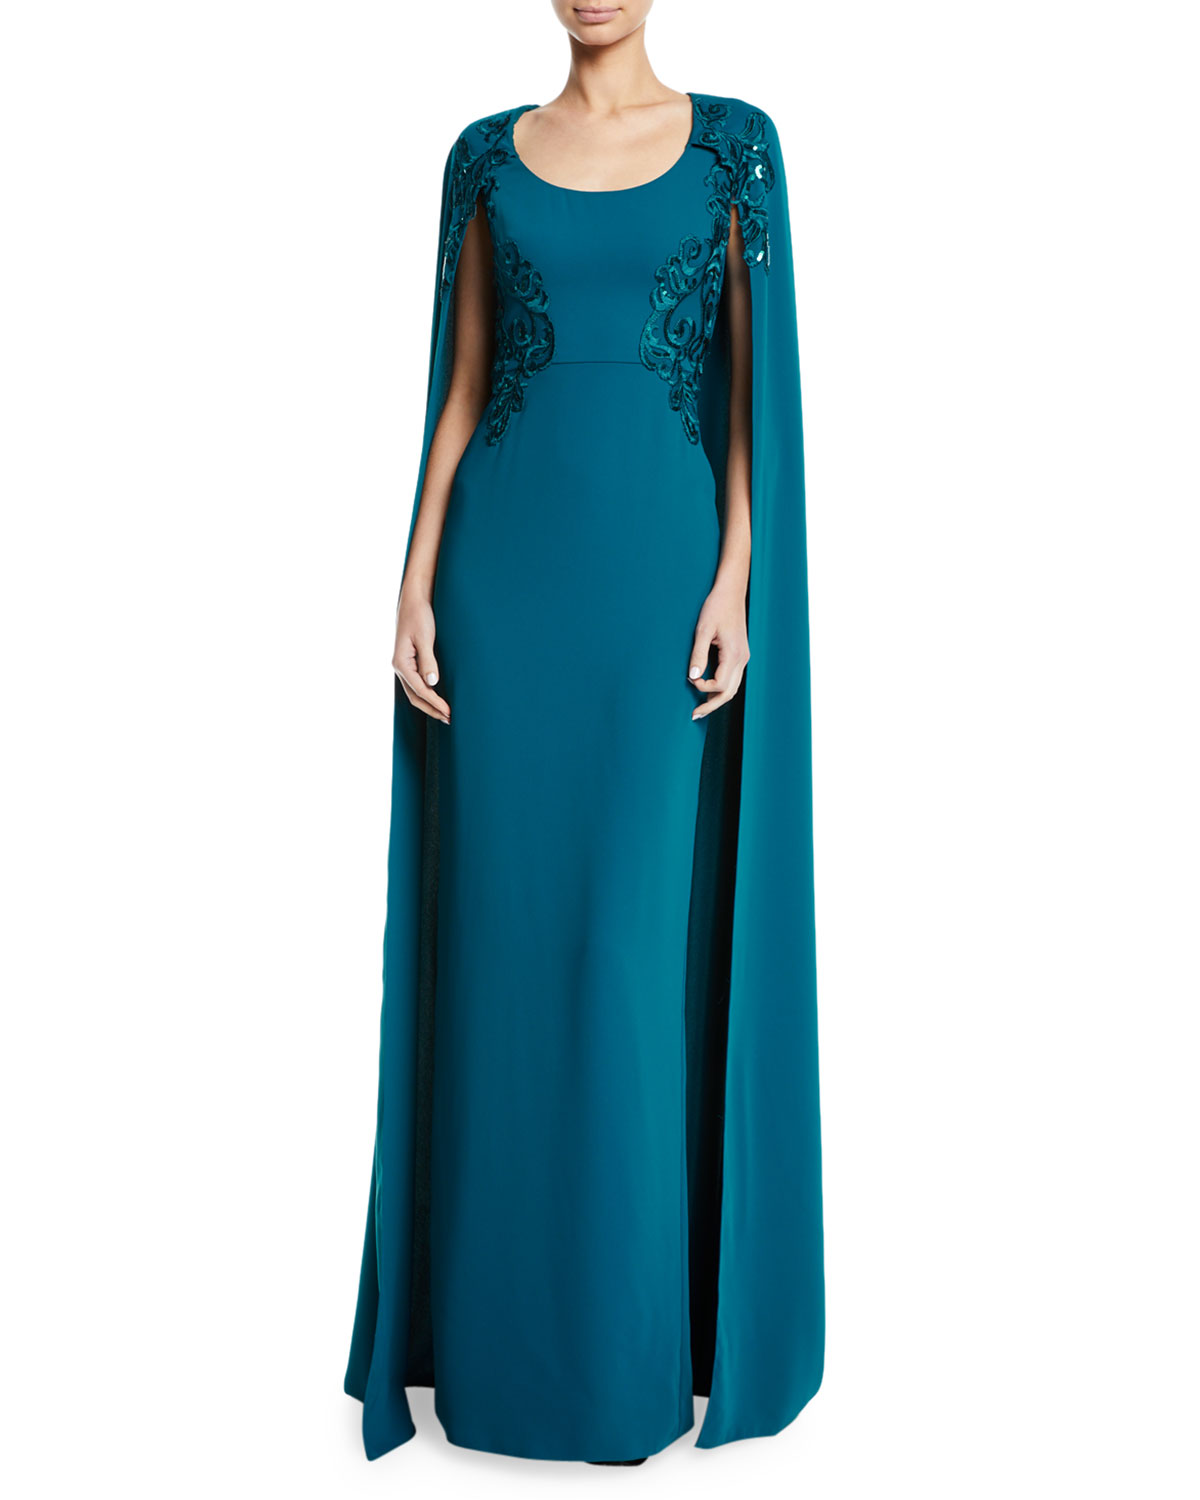 b64bfcaa01f Marchesa Notte Embroidered Scoop-Neck Cape Gown